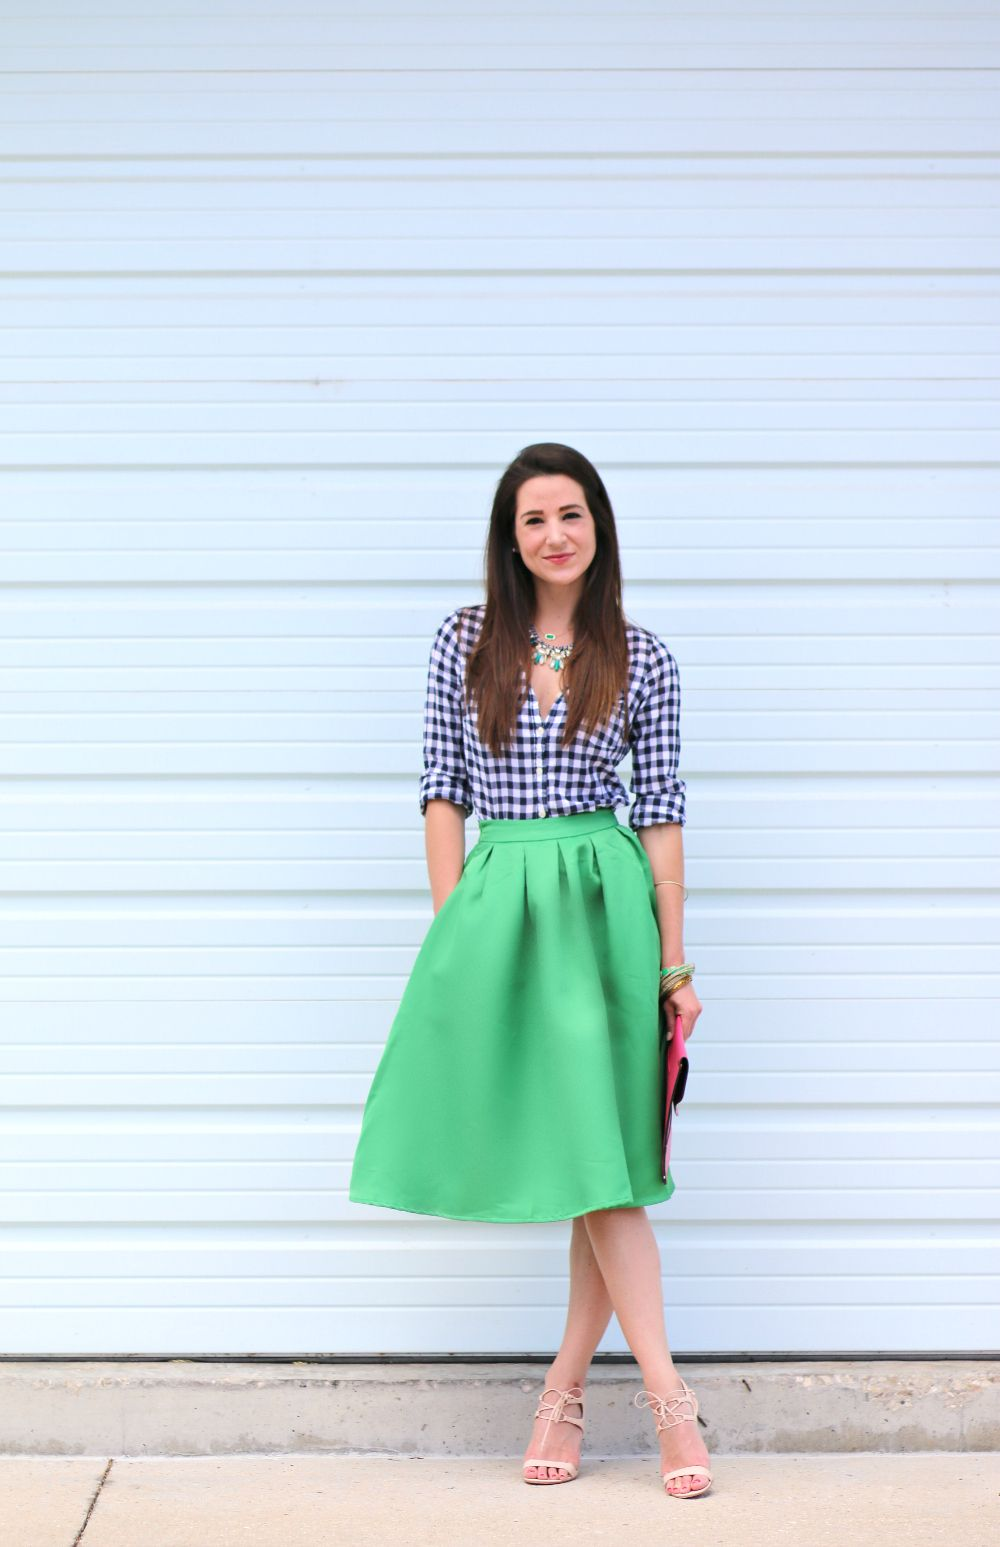 f392e0882d68 kelly green midi skirt, eating recovery day, green midi skirt. colorful  work outfit, spring work outfit, stephanie ziajka, Diary of a Debutante